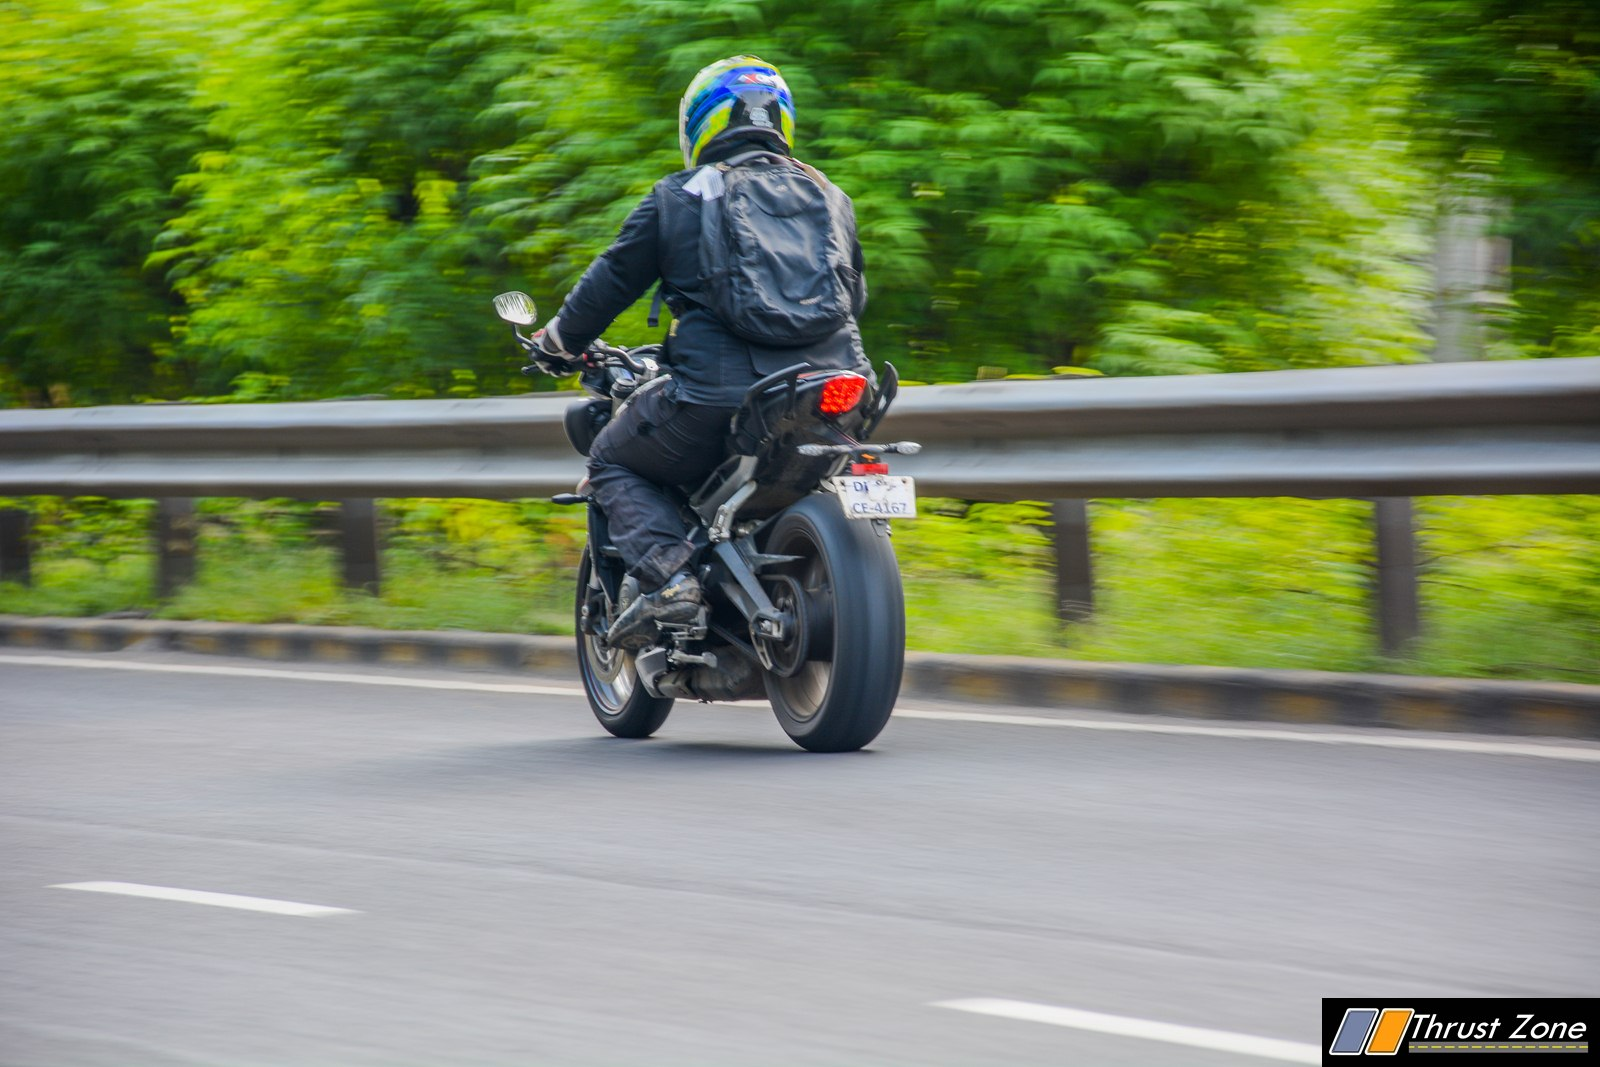 2018-Street-Triple-RS-India-Review-20